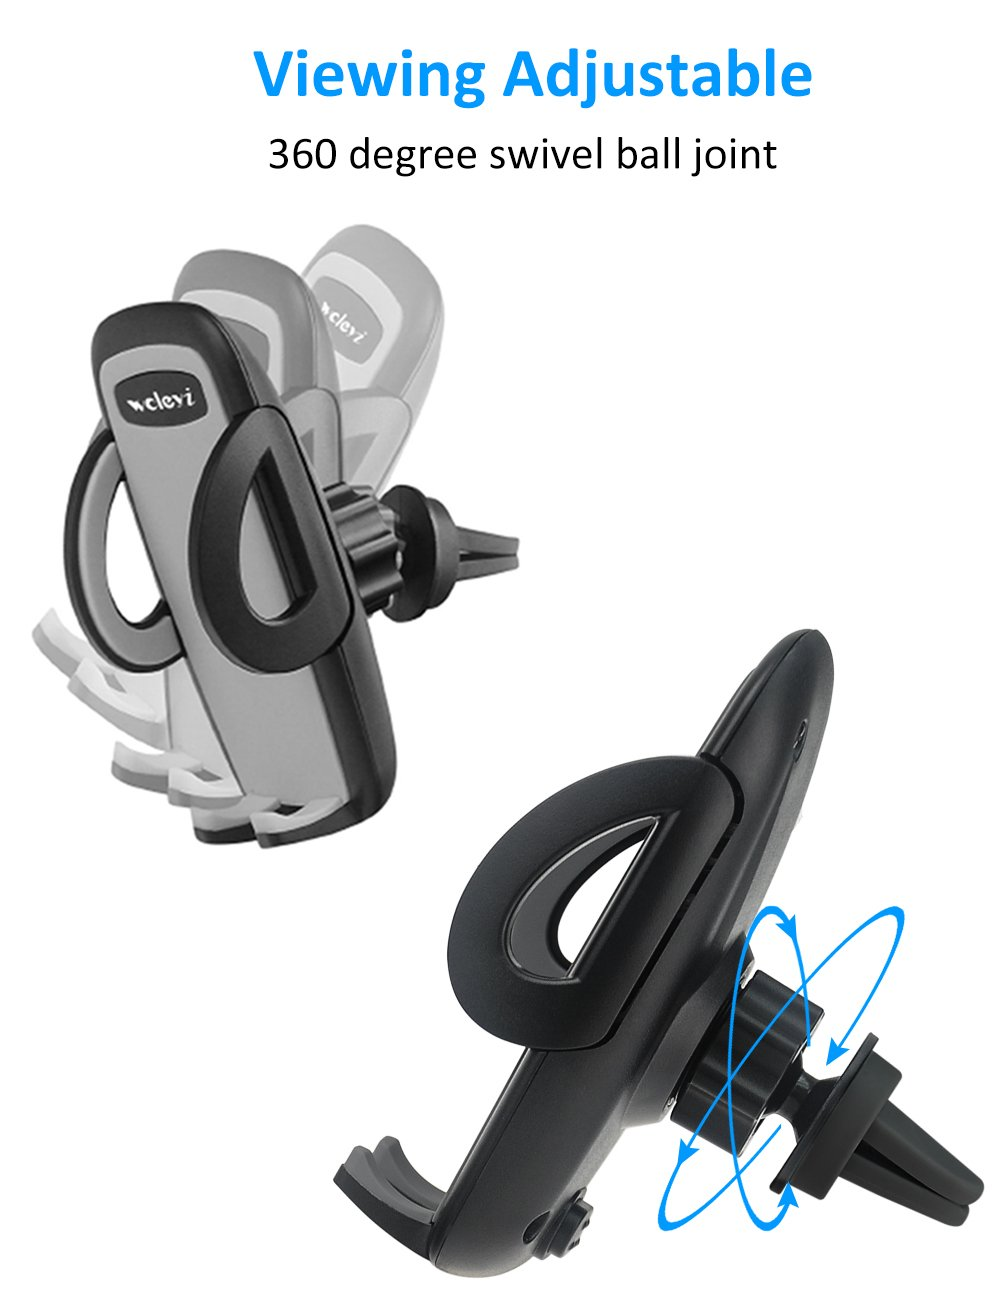 woleyi Car Vent Mount Air Vent Clip - Car Holder for Cell Phones and GPS by woleyi (Image #5)